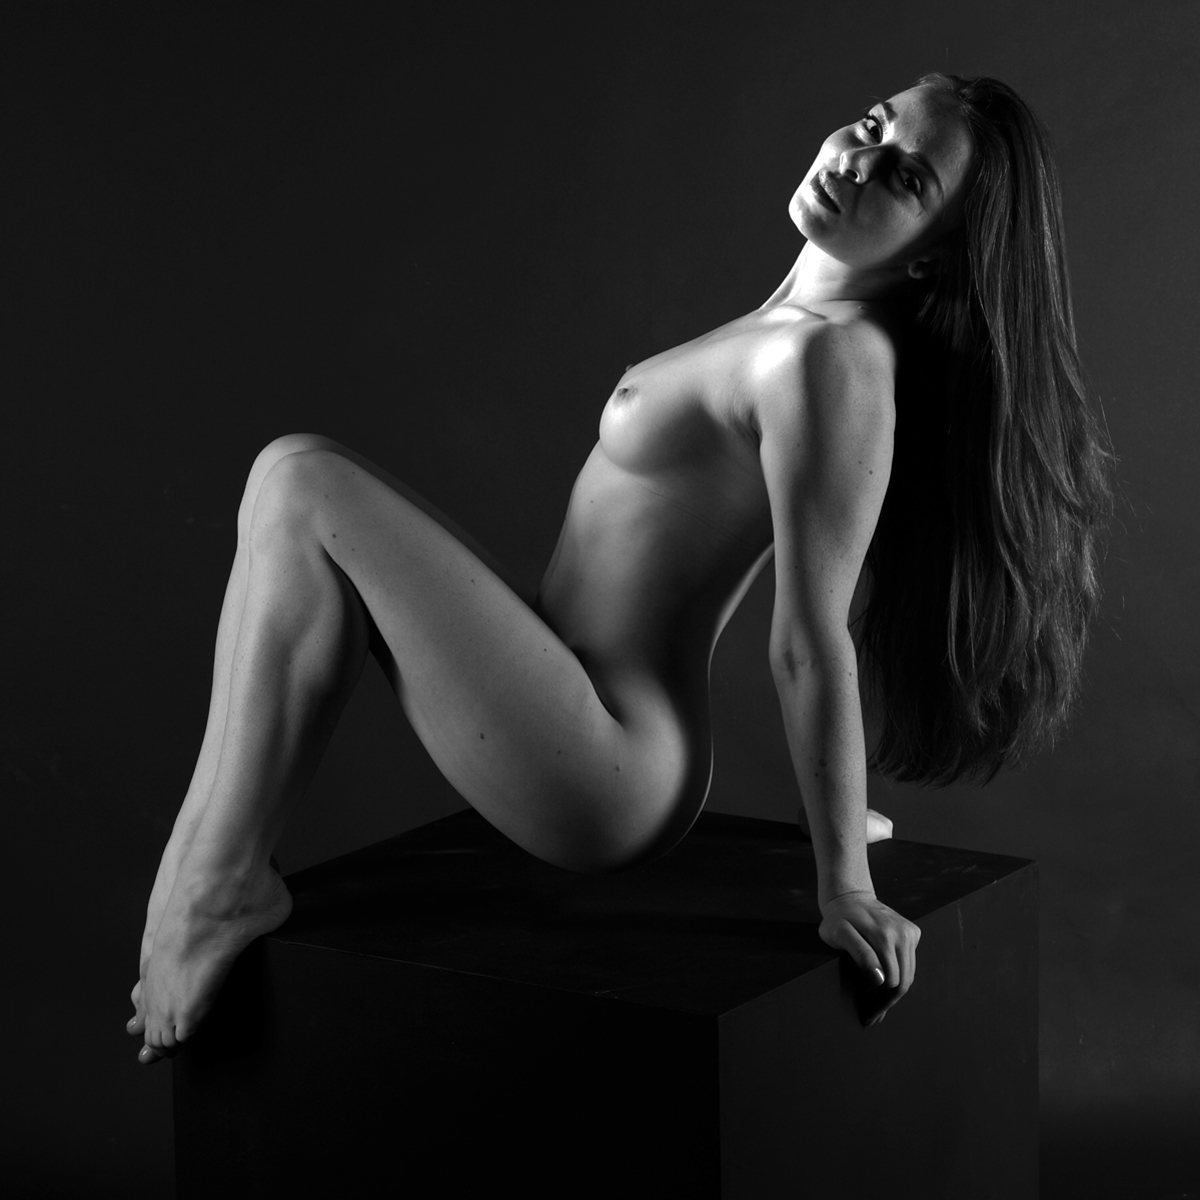 white nudes artistic woman Black and